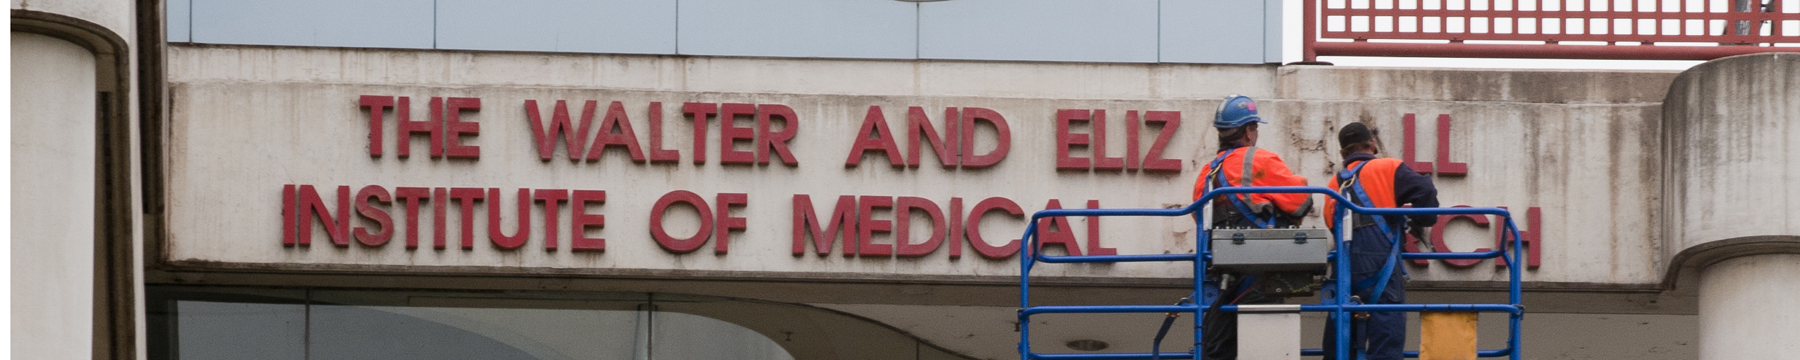 Removal of old building signage